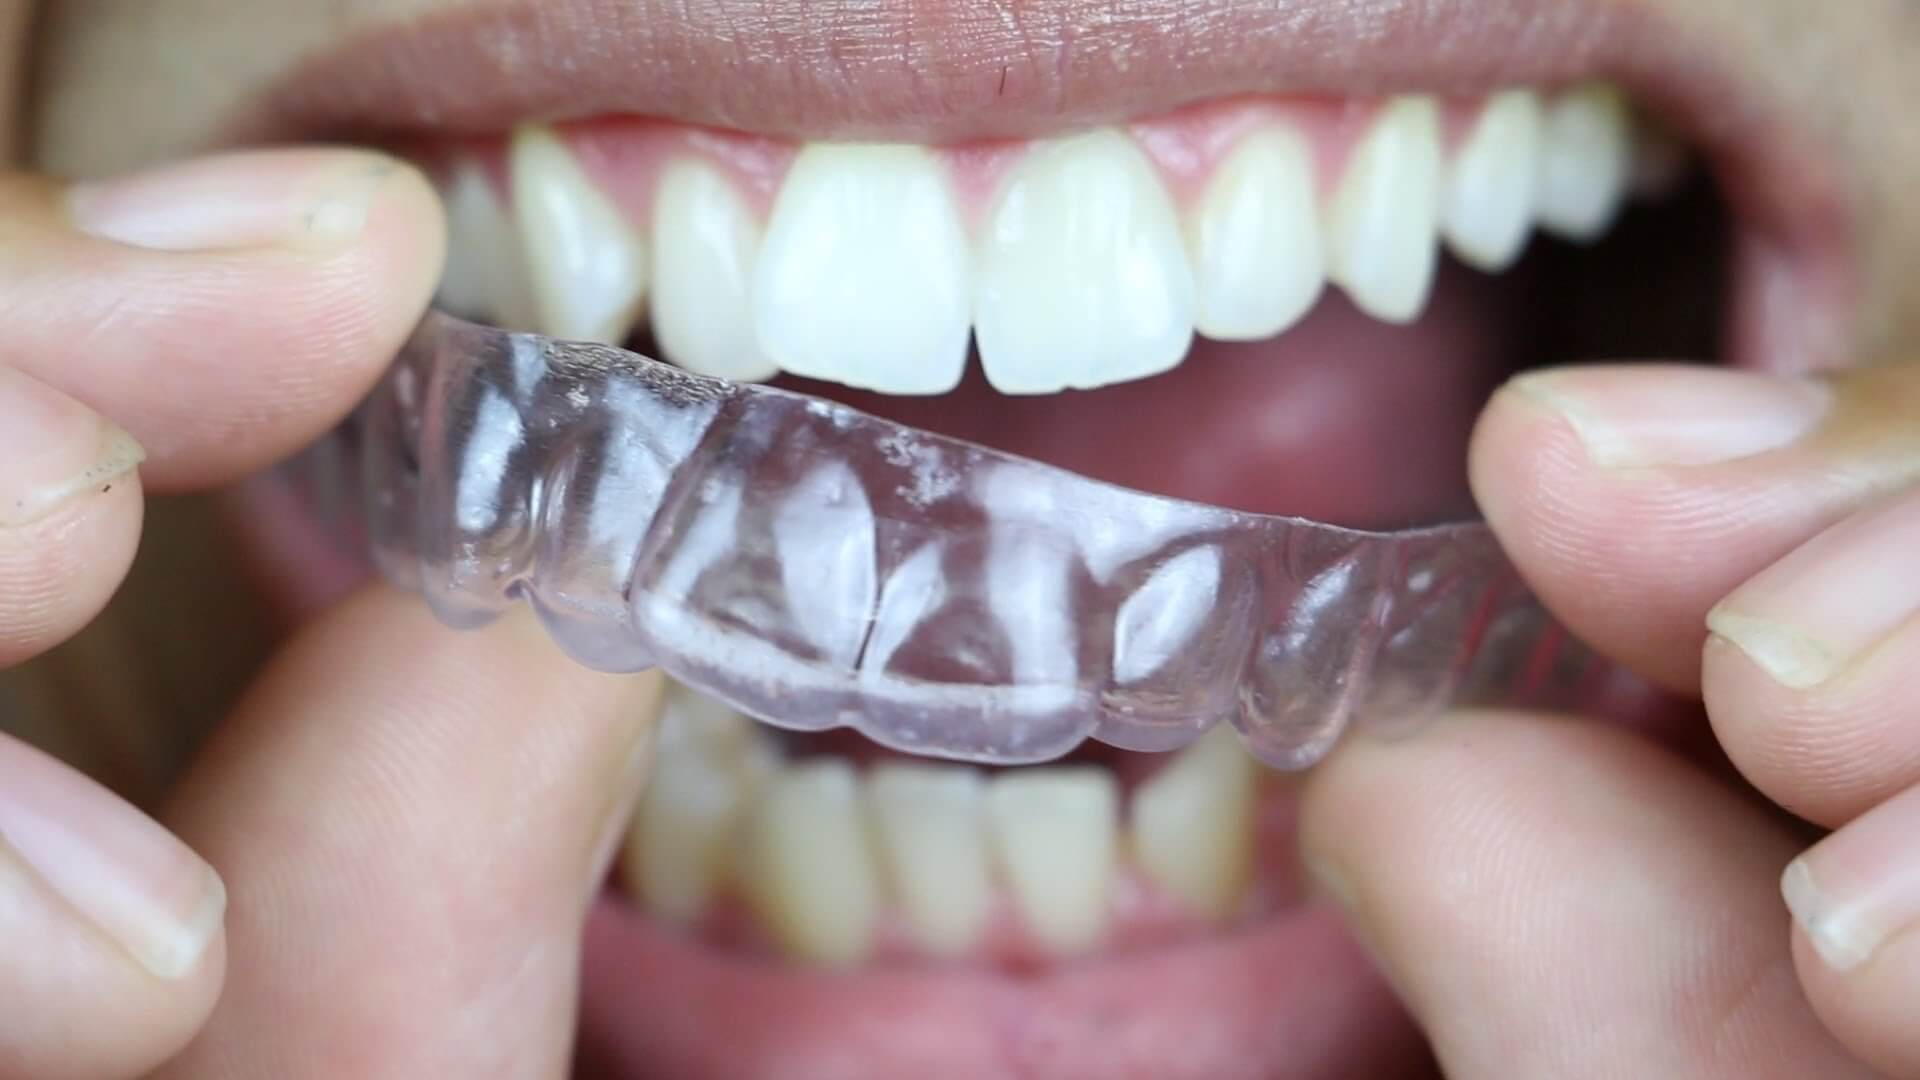 Refurbished Amazon  Smile Direct Club Clear Aligners